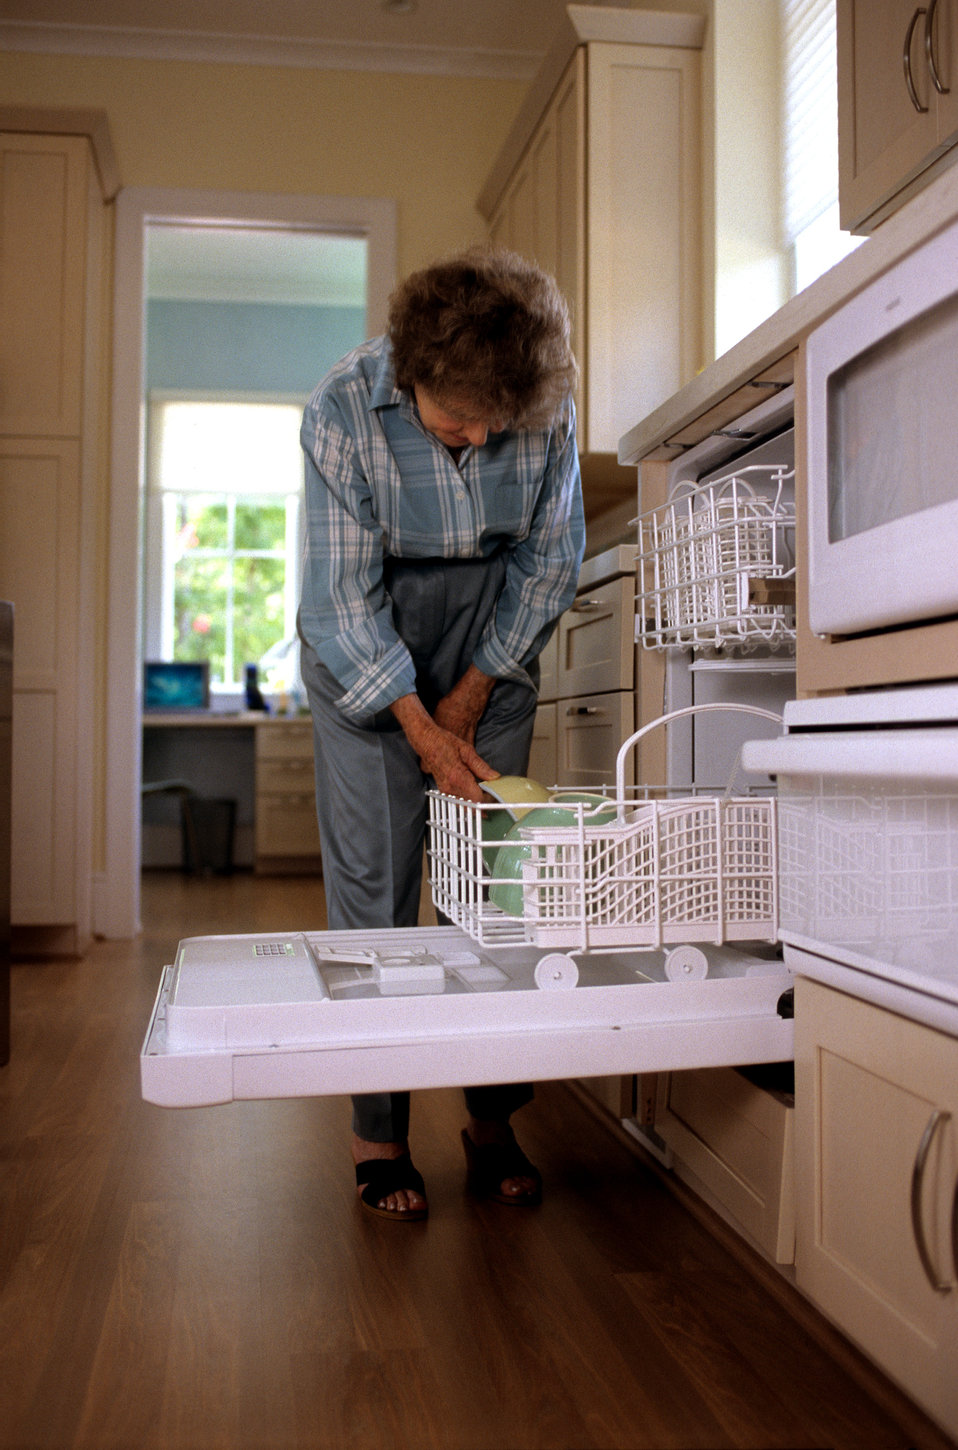 This 2000 image depicted a universally-designed, raised dishwasher that was being loaded by an elderly woman, and though she was bent over,